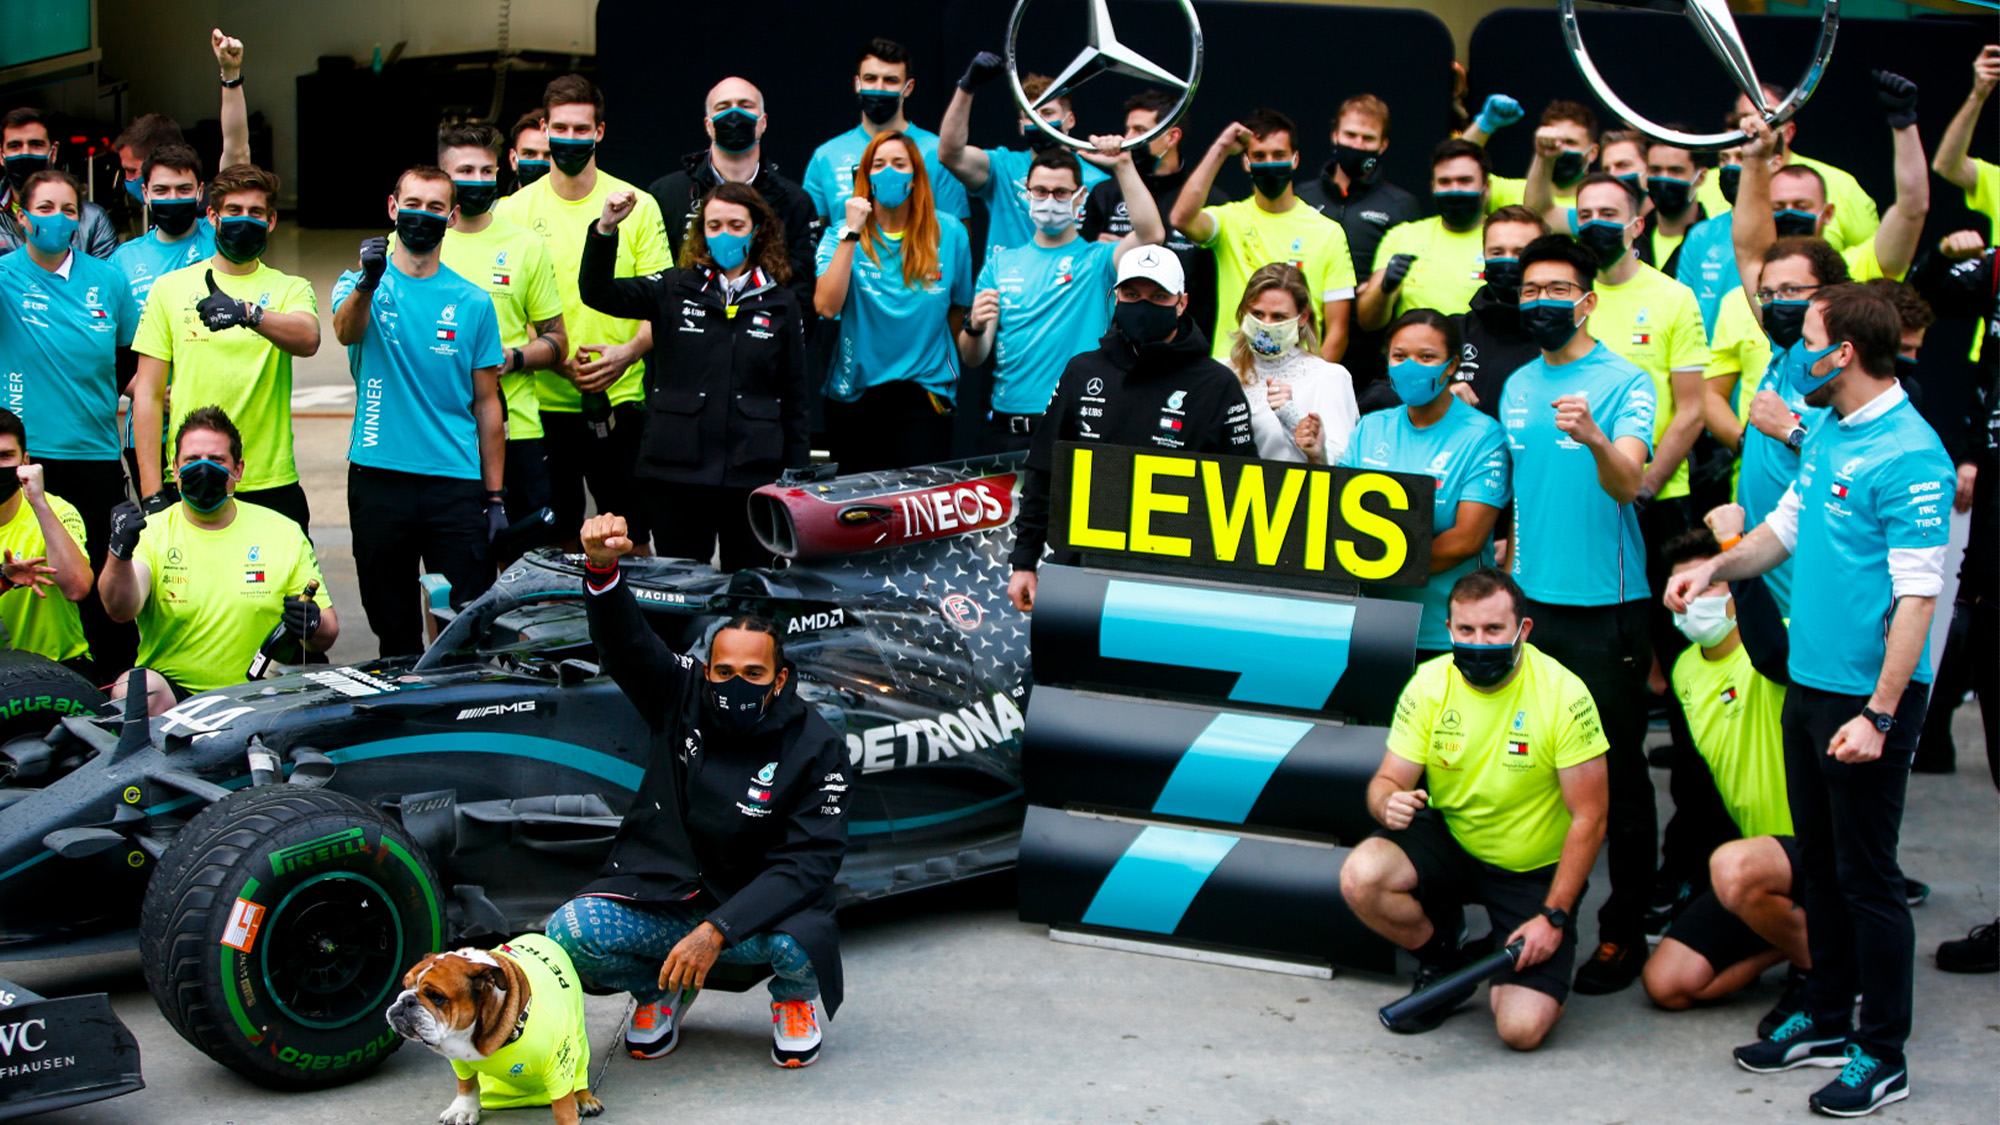 Lewis Hamilton celebrates his seventh F1 World Championship with the Mercedes team after the 2020 Turkish Grand Prix